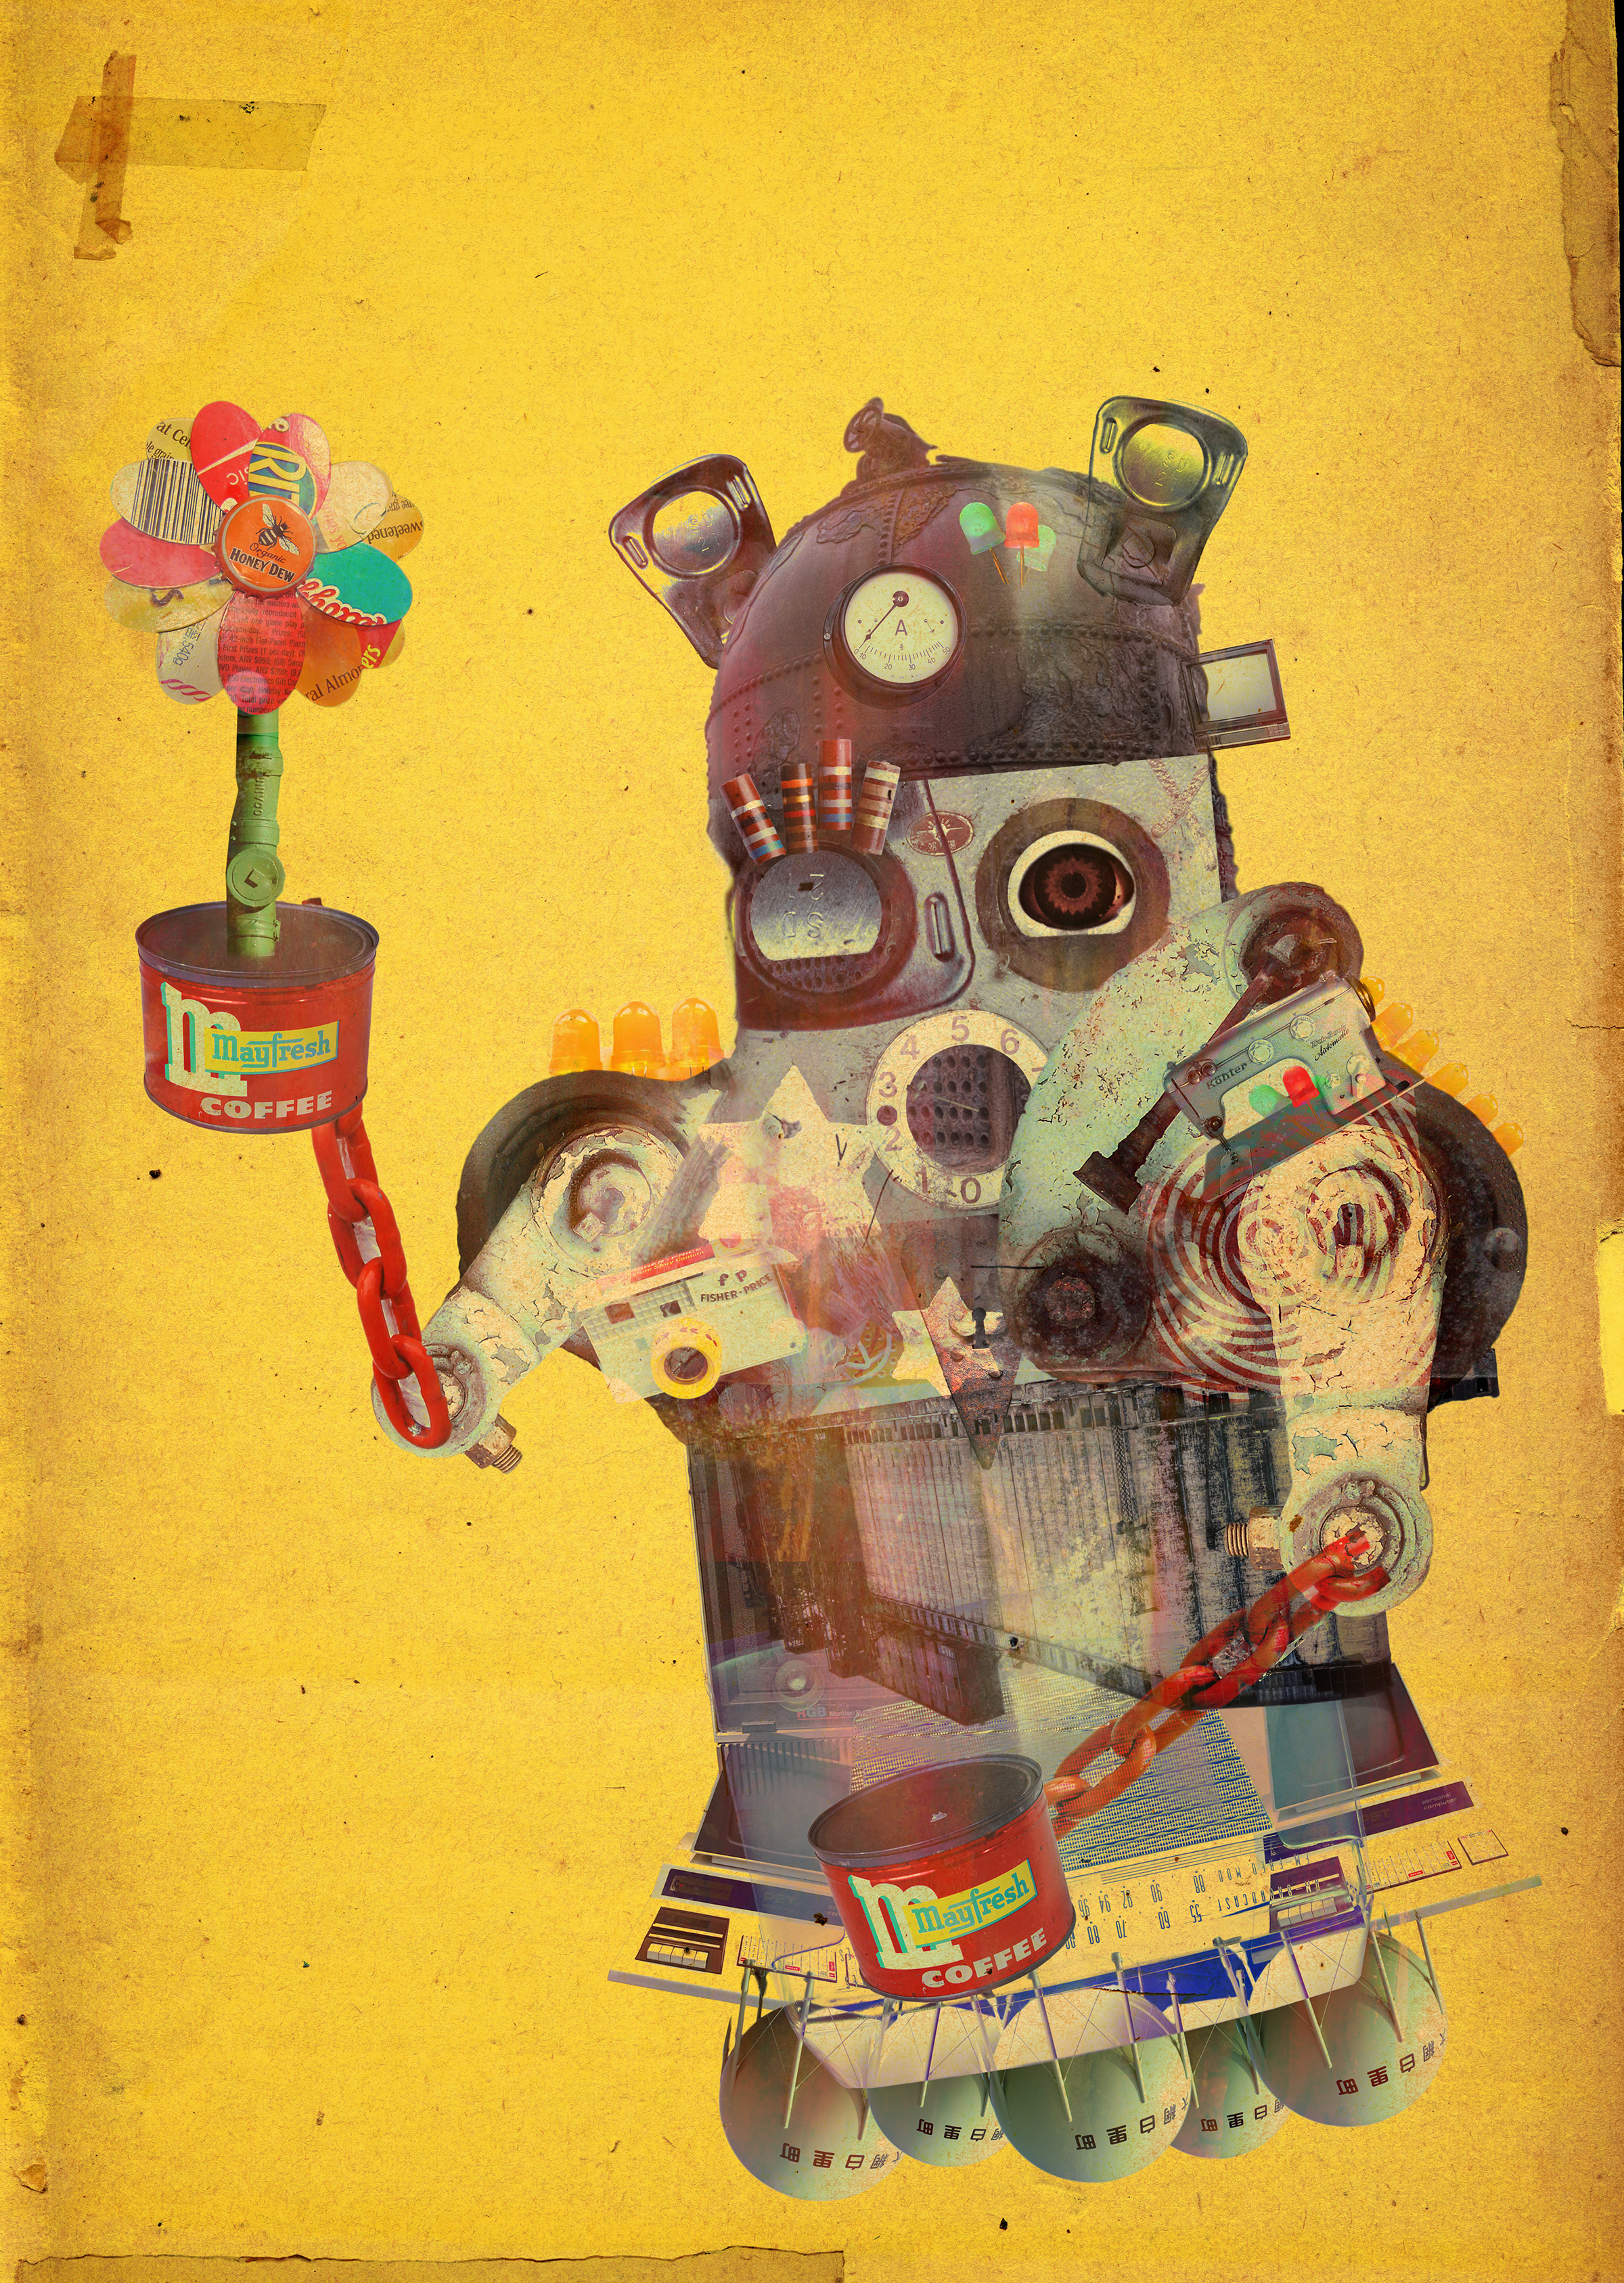 A collage technique illustration of a robot holding a flower.